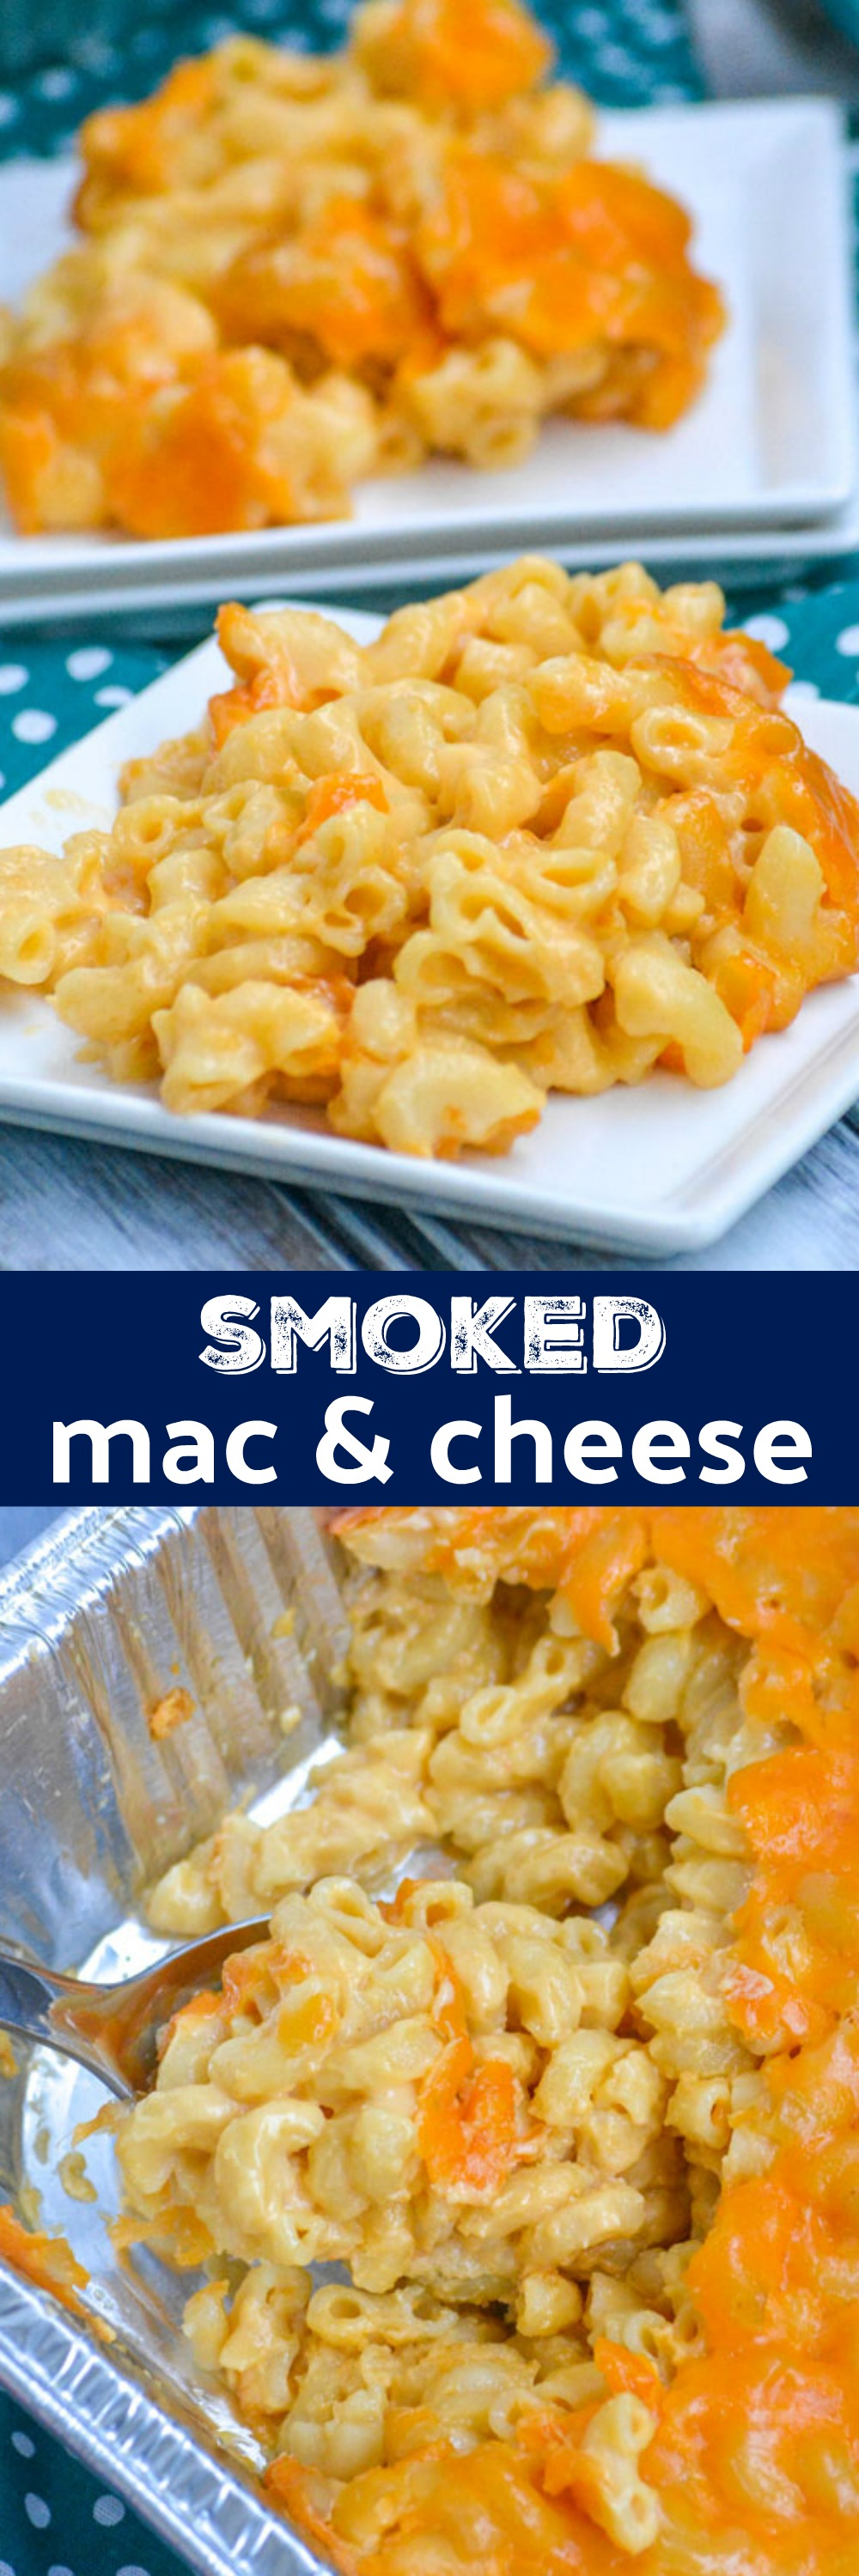 A rich, creamy, savory mac and cheese is hard to beat, and the recipe for one is a golden ticket, enjoy the keys to the kingdom with our Smoked Macaroni & Cheese. A bit of smokiness is the key to the Mac & Cheese Kingdom.